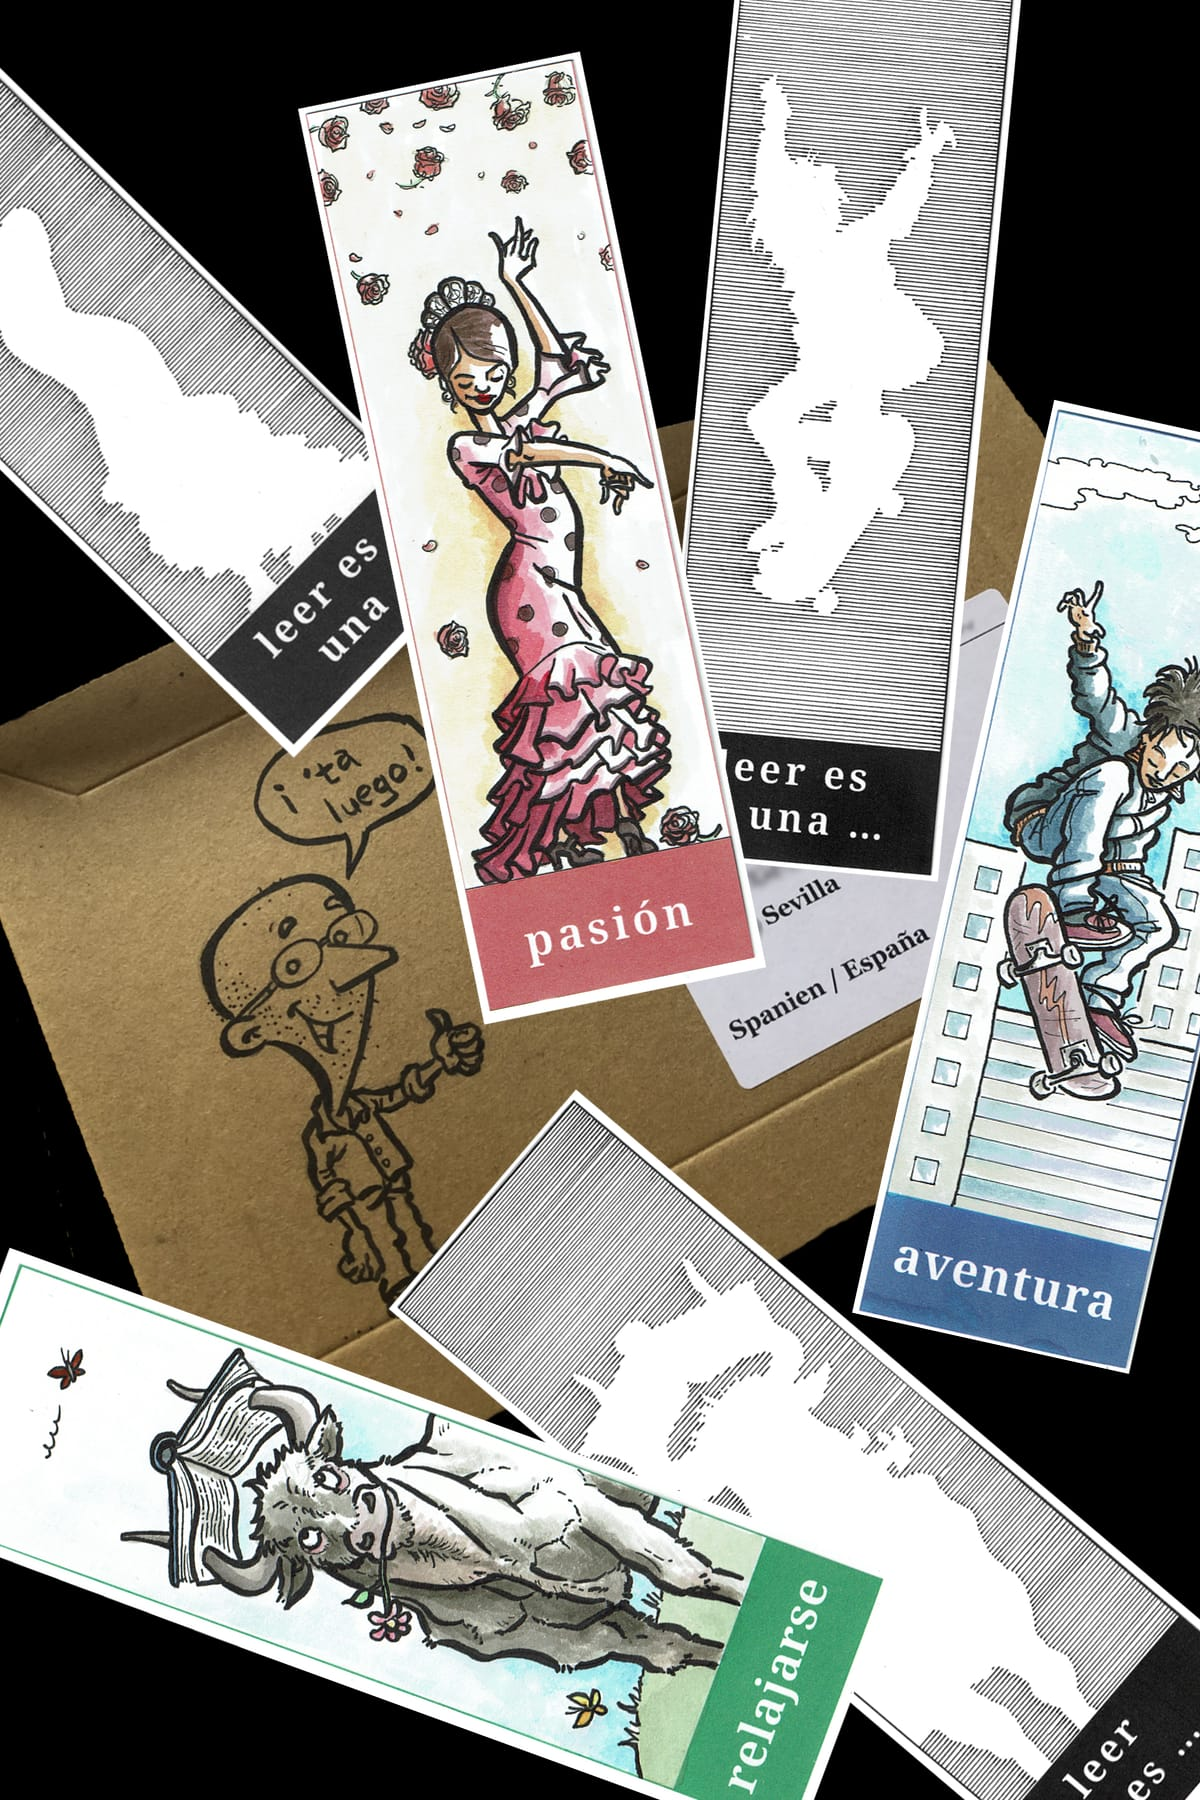 Photo of three bookmarks the blog author has made